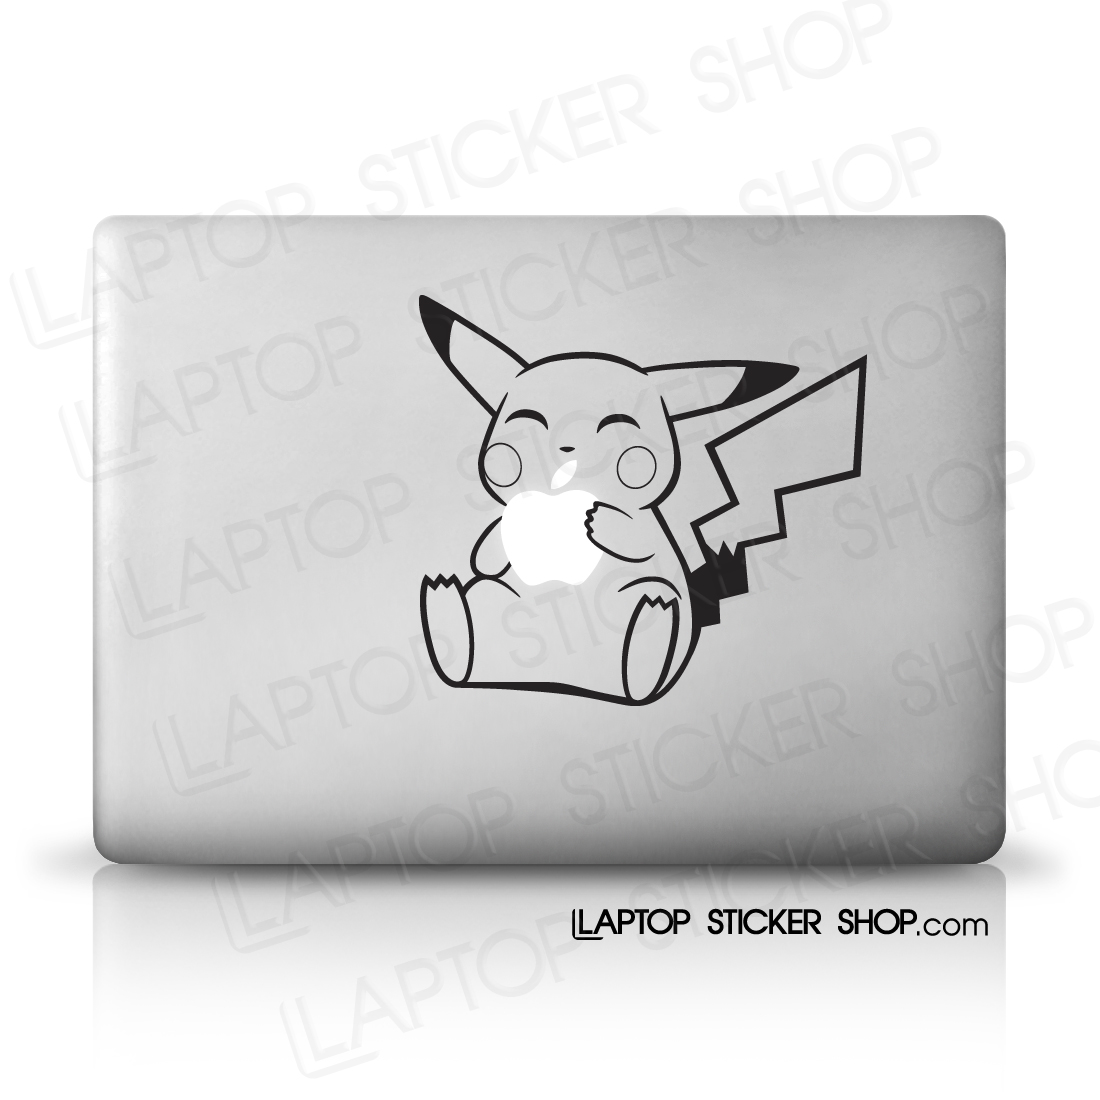 Drawn macbook eaten And and Pikachu cheap stickers